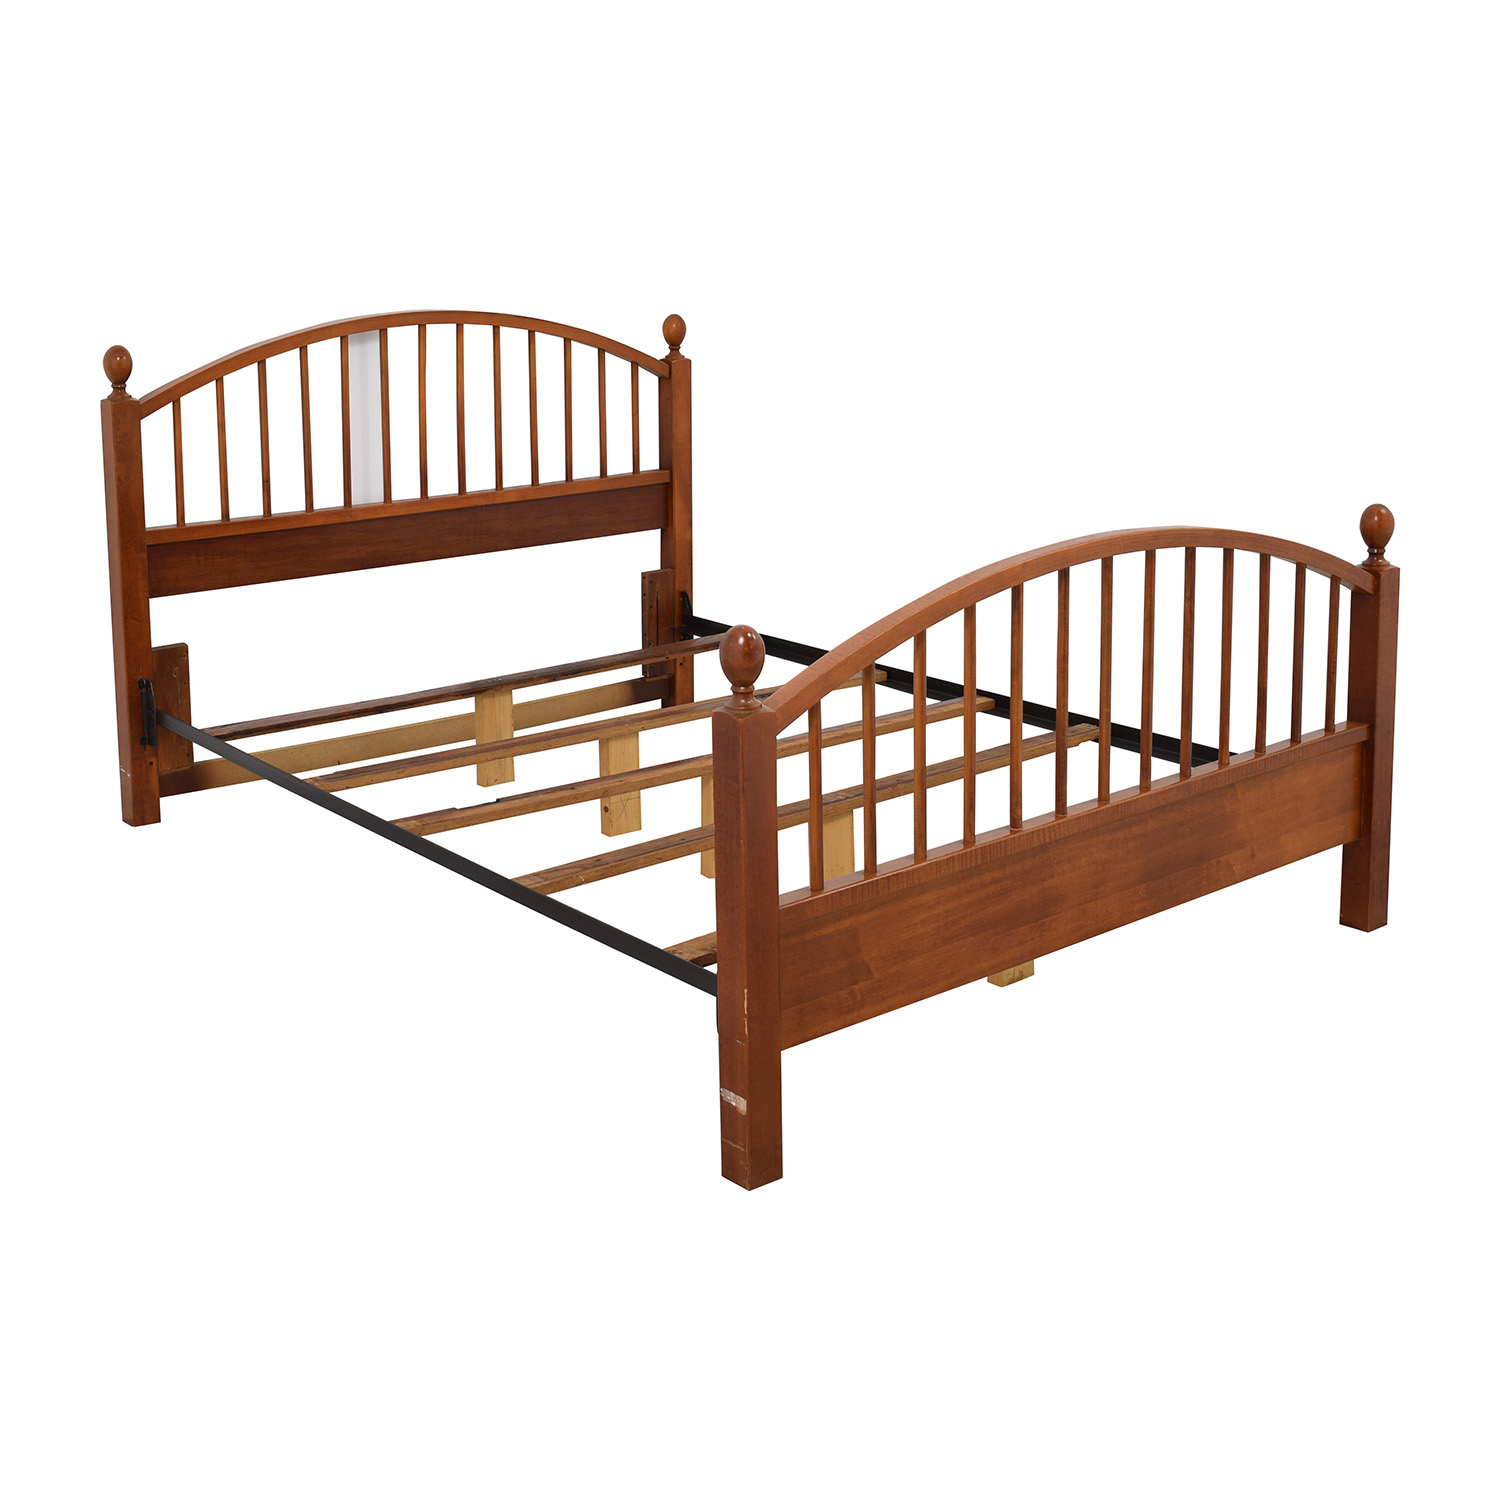 Buy bed frame 28 images full image for cheap wooden for Best place to get picture frames